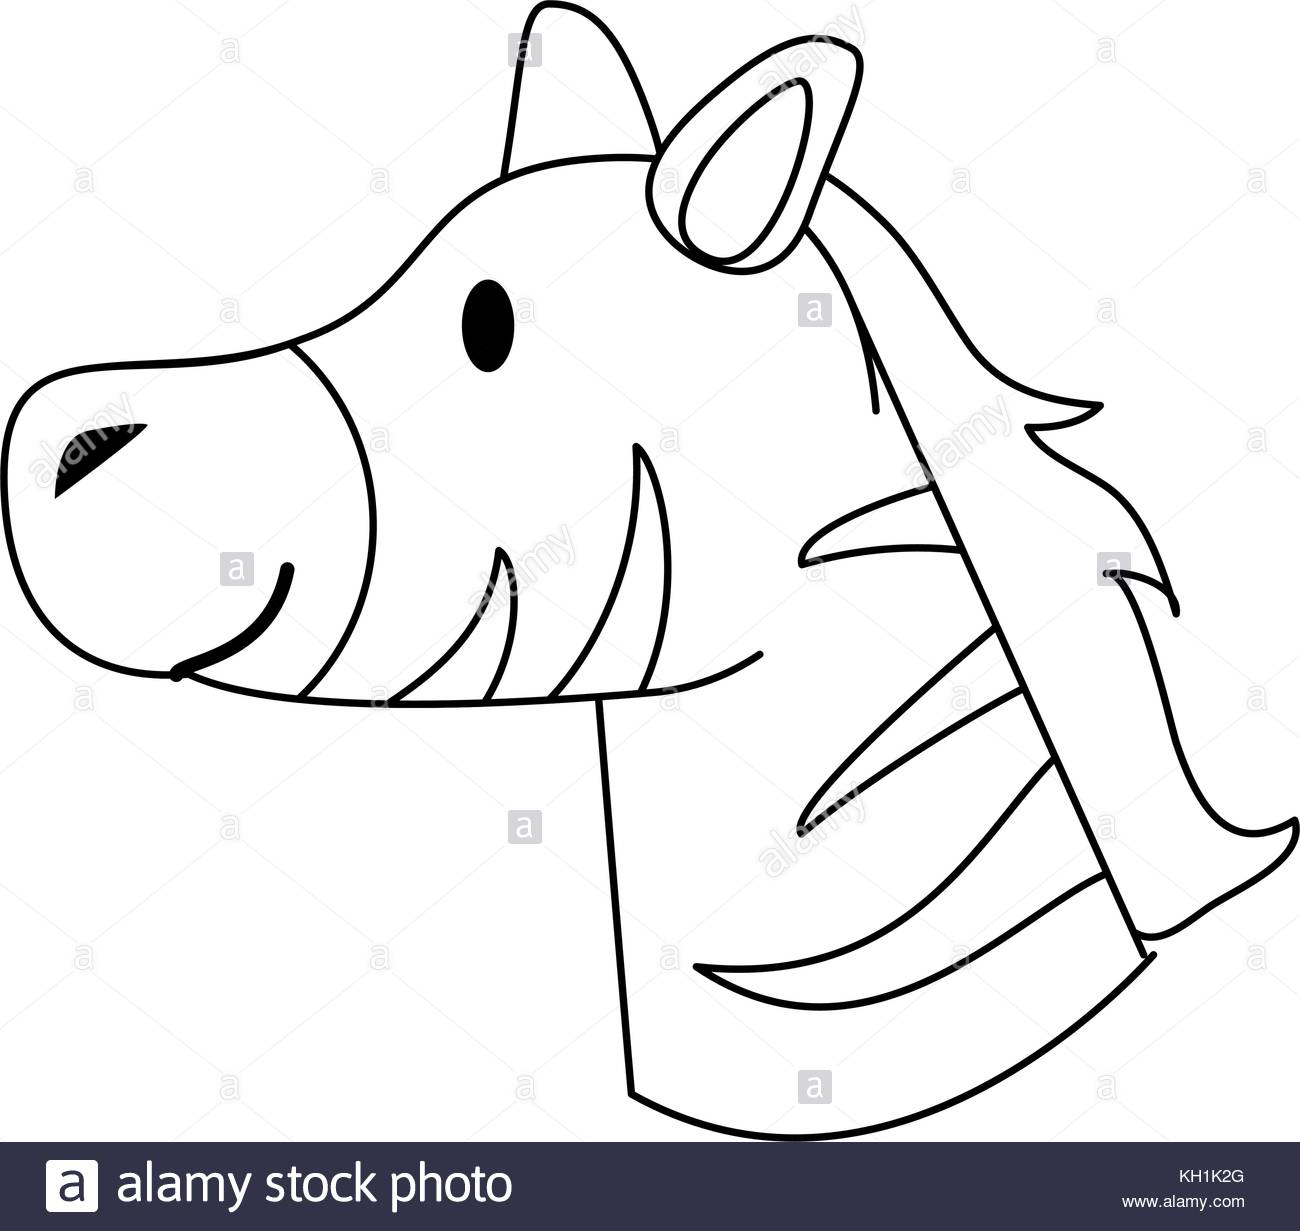 1300x1231 Zebra Head Cartoon Stock Photos Amp Zebra Head Cartoon Stock Images